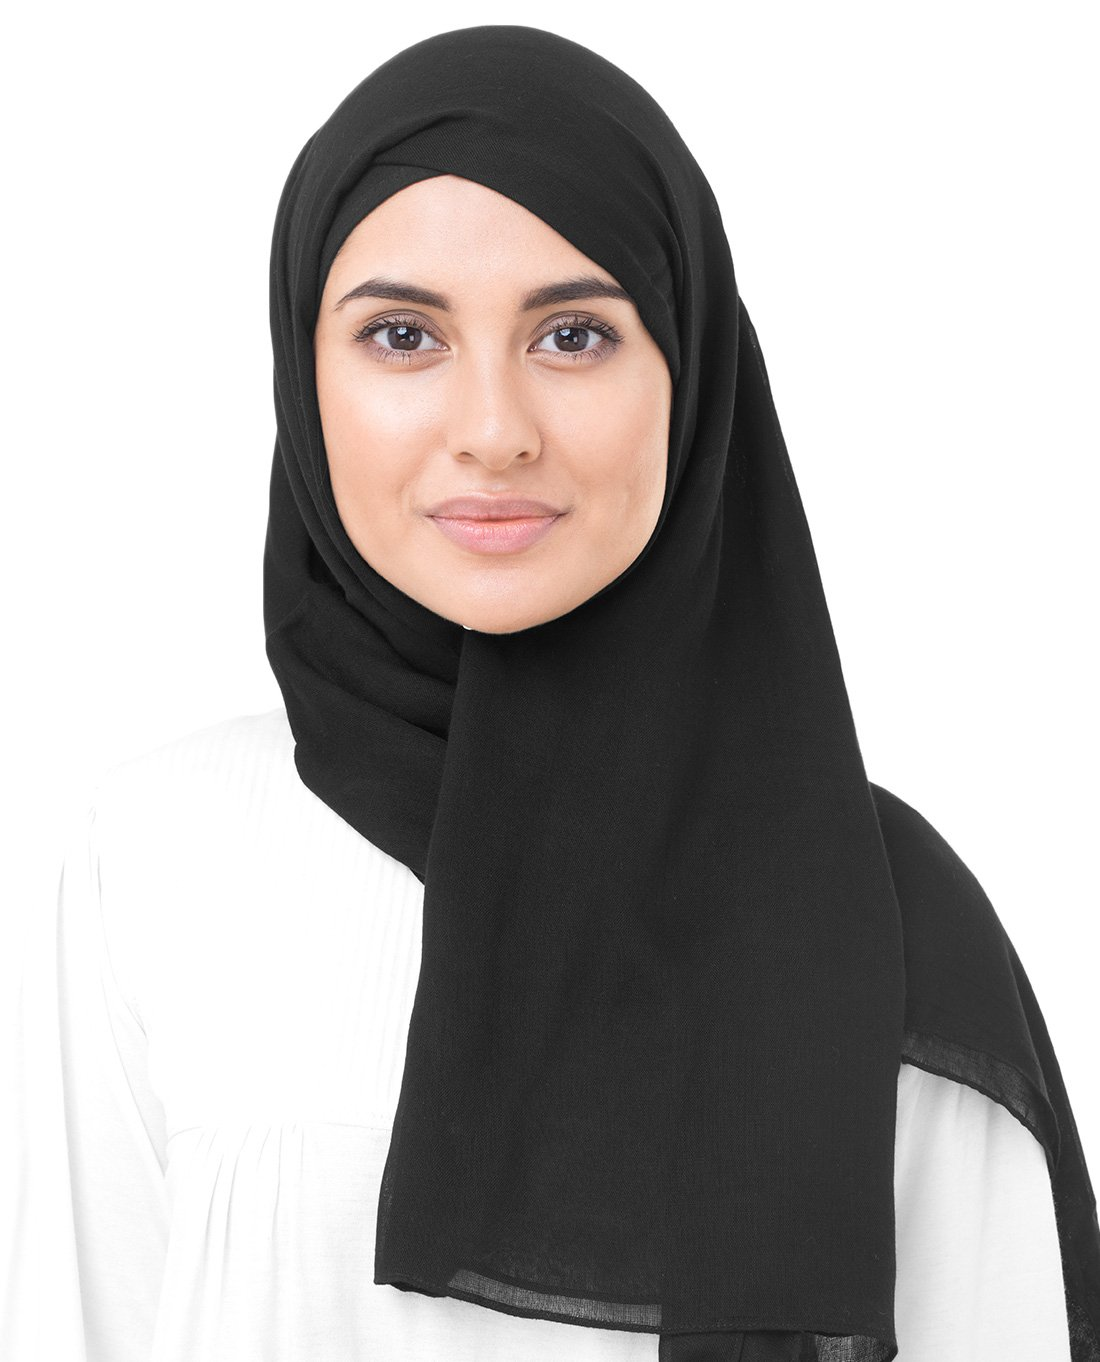 InEssence Jet Black Viscose Woven Scarf Women Girls Wrap Large Size Hijab